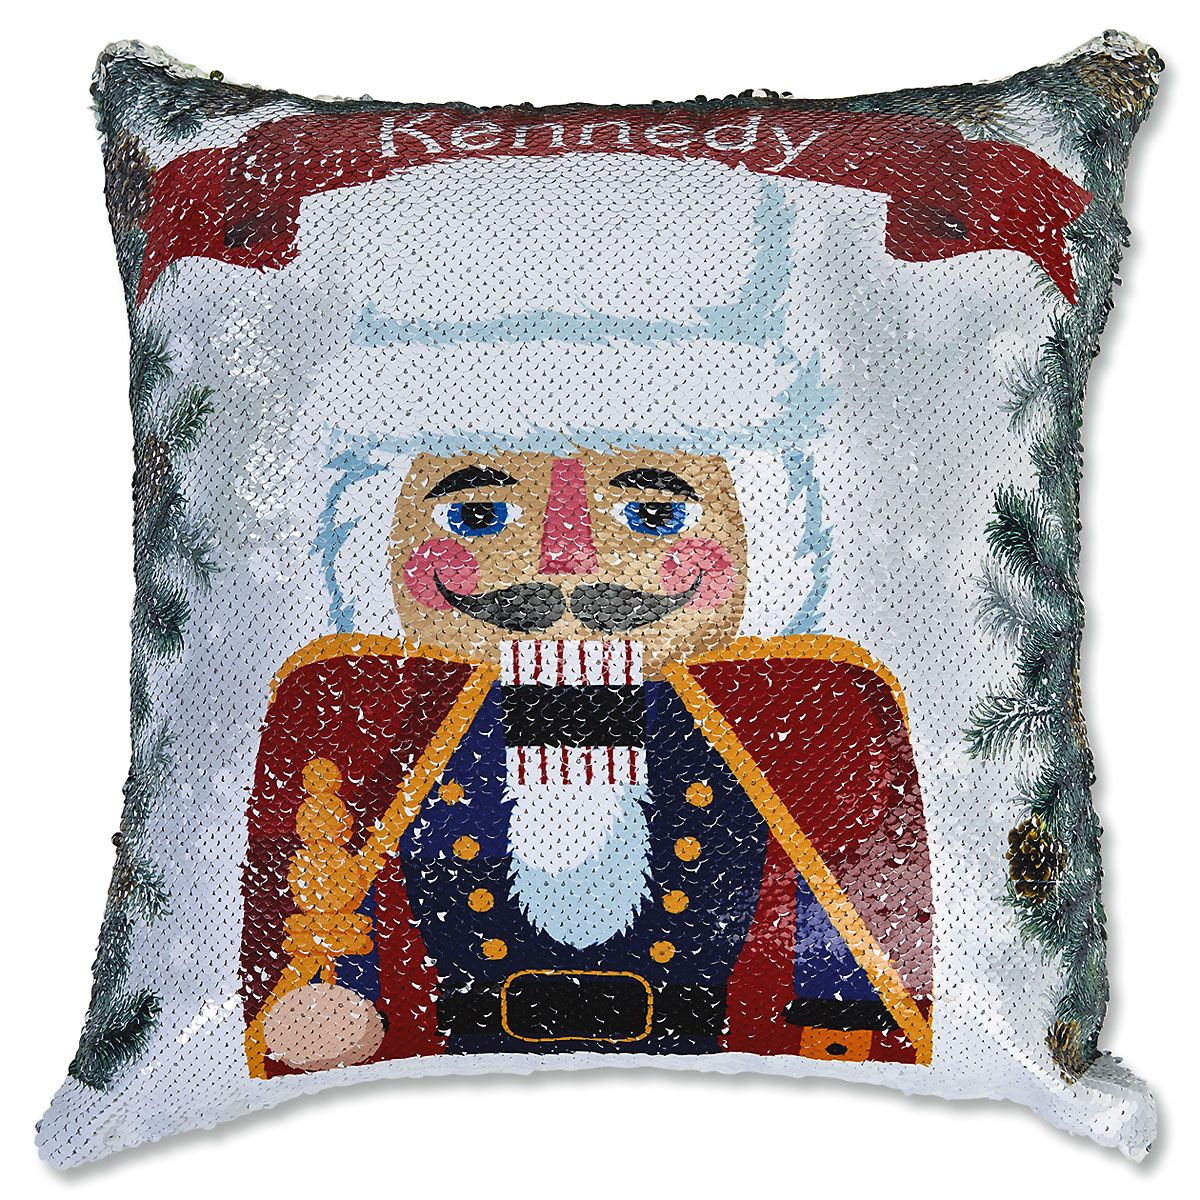 Sequined Holiday Nutcracker Pillow